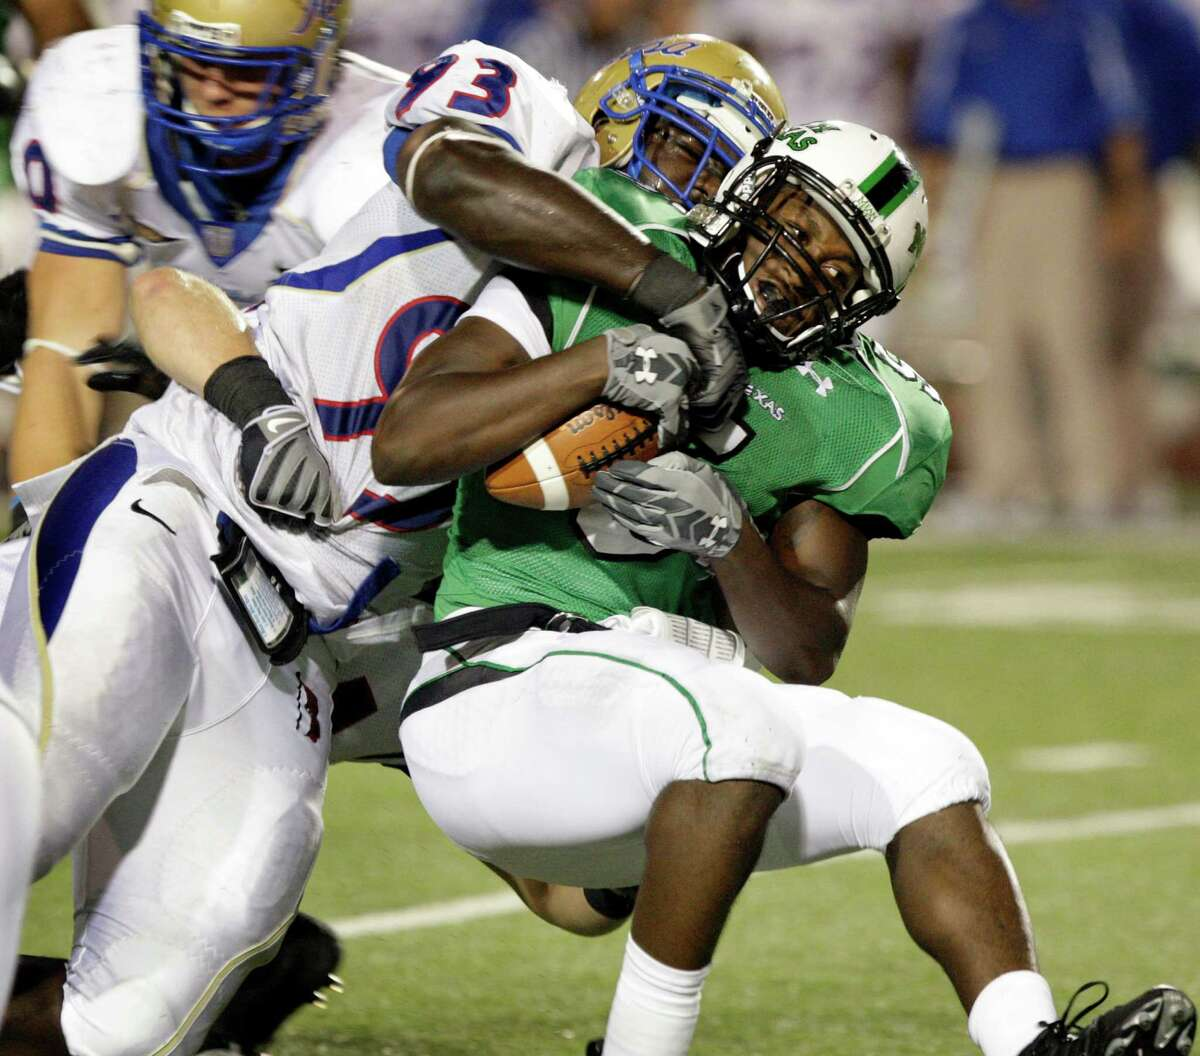 North Texas Mean Green (3-6) Current AP top 25 ranking: N/A Bowl predictions: Makers Wanted Bahamas Bowl vs. Ball St. (Thomas A. Robinson National Stadium, Nassau, Bahamas Dec. 20, 2 p.m., ESPN) Lockheed Martin Armed Forces Bowl vs. Wyoming (Amon G. Carter Stadium, Fort Worth, Texas, Jan. 4, 11:30 a.m., ESPN)